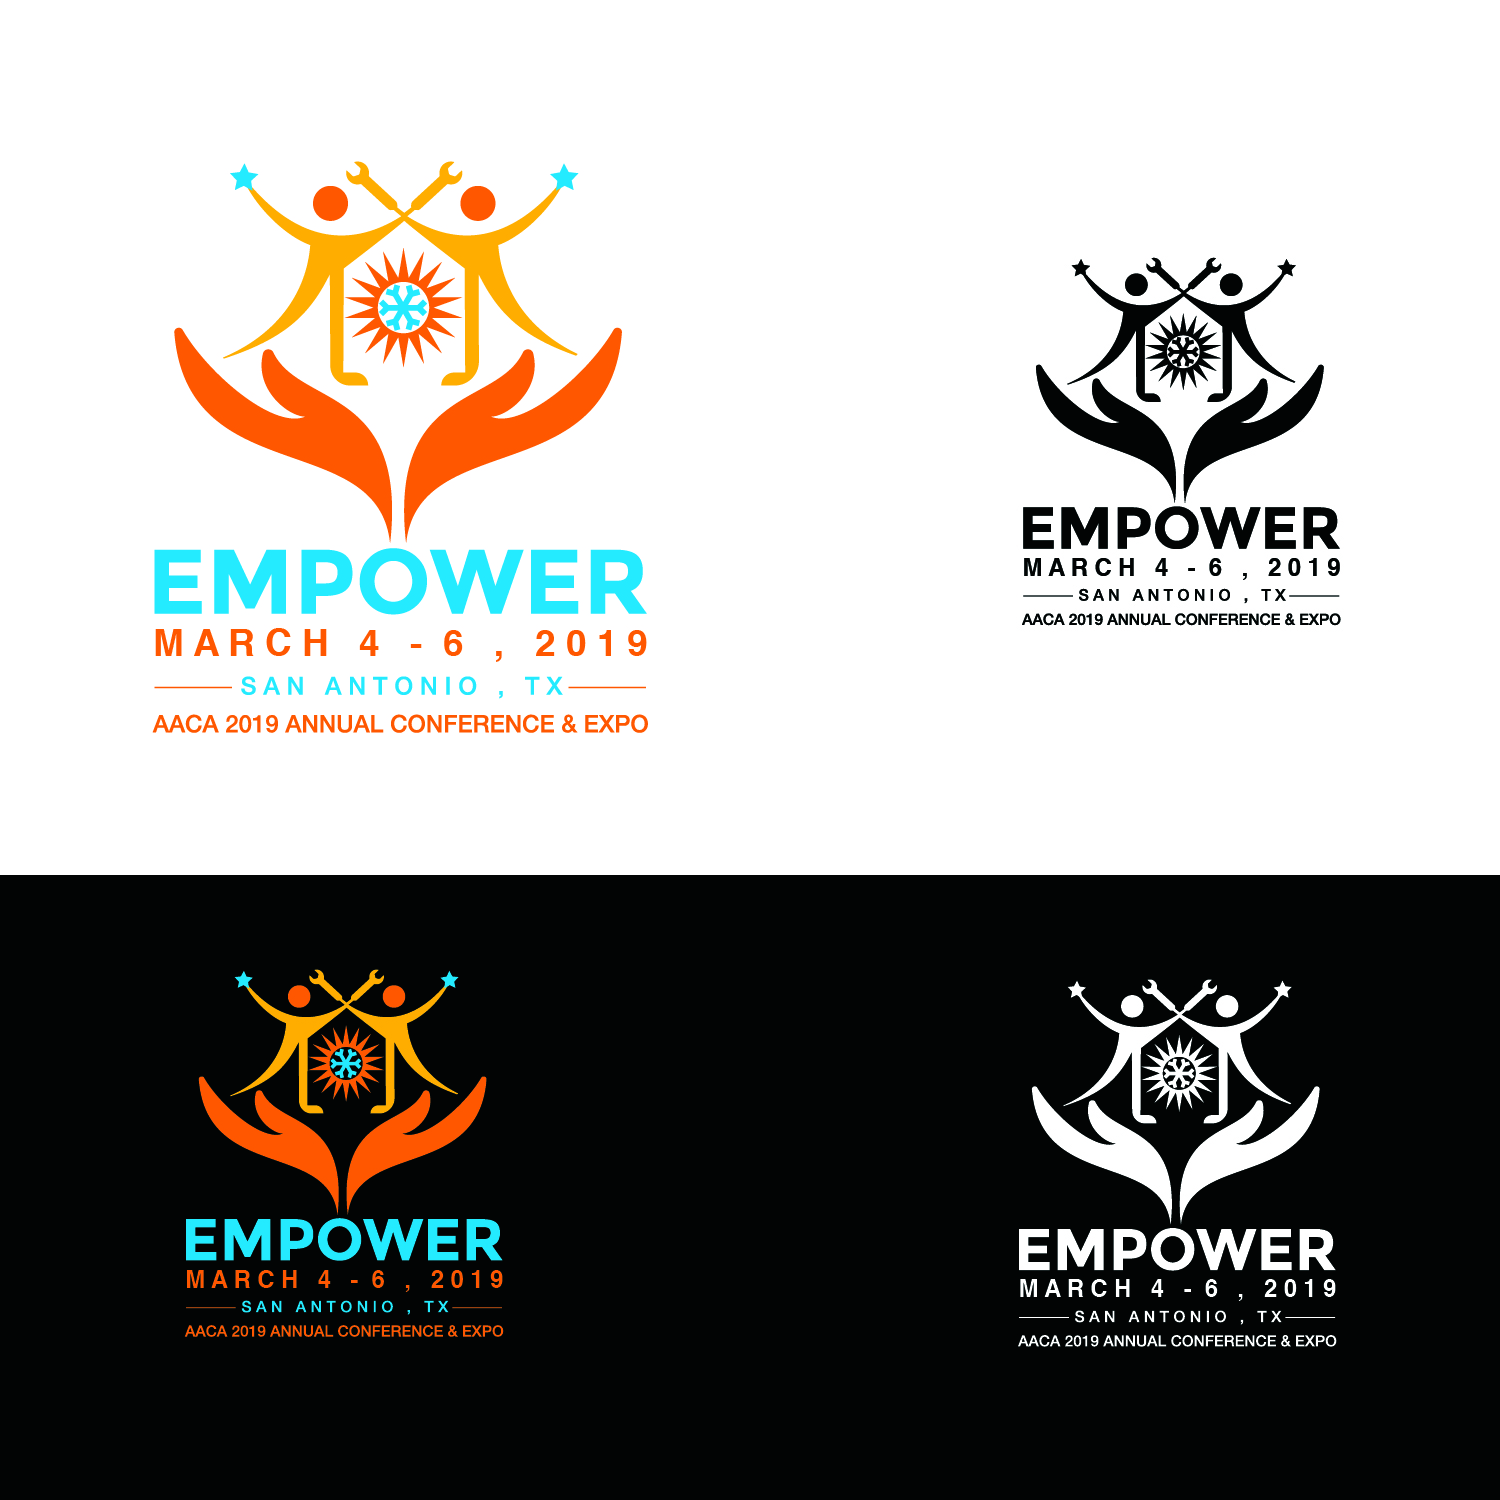 serious, professional, air conditioning logo design for empower